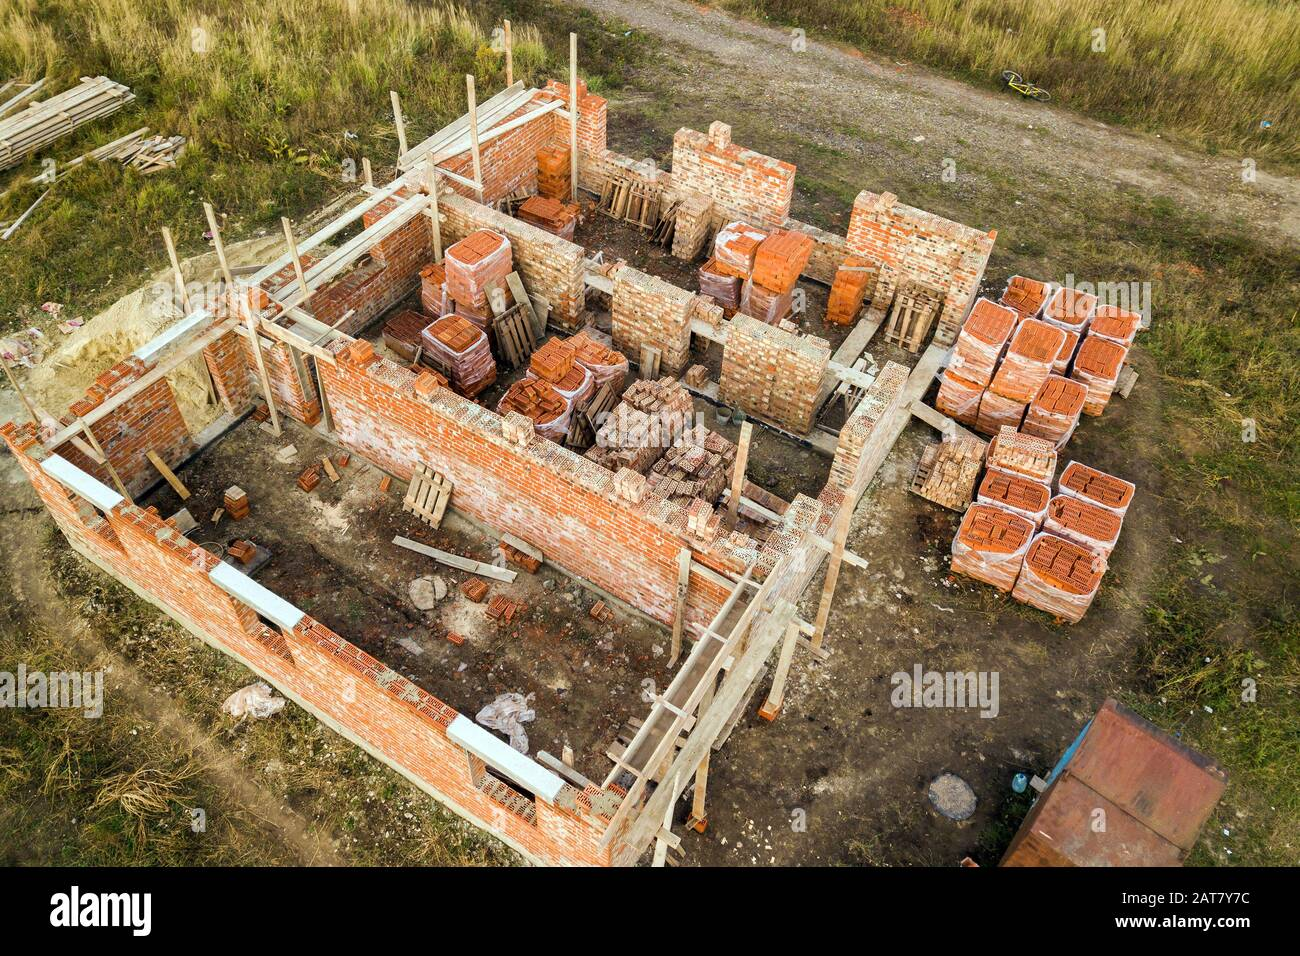 Aerial View Of Building Site For Future Brick House Concrete Foundation Floor And Stacks Of Yellow Clay Bricks For Construction Stock Photo Alamy